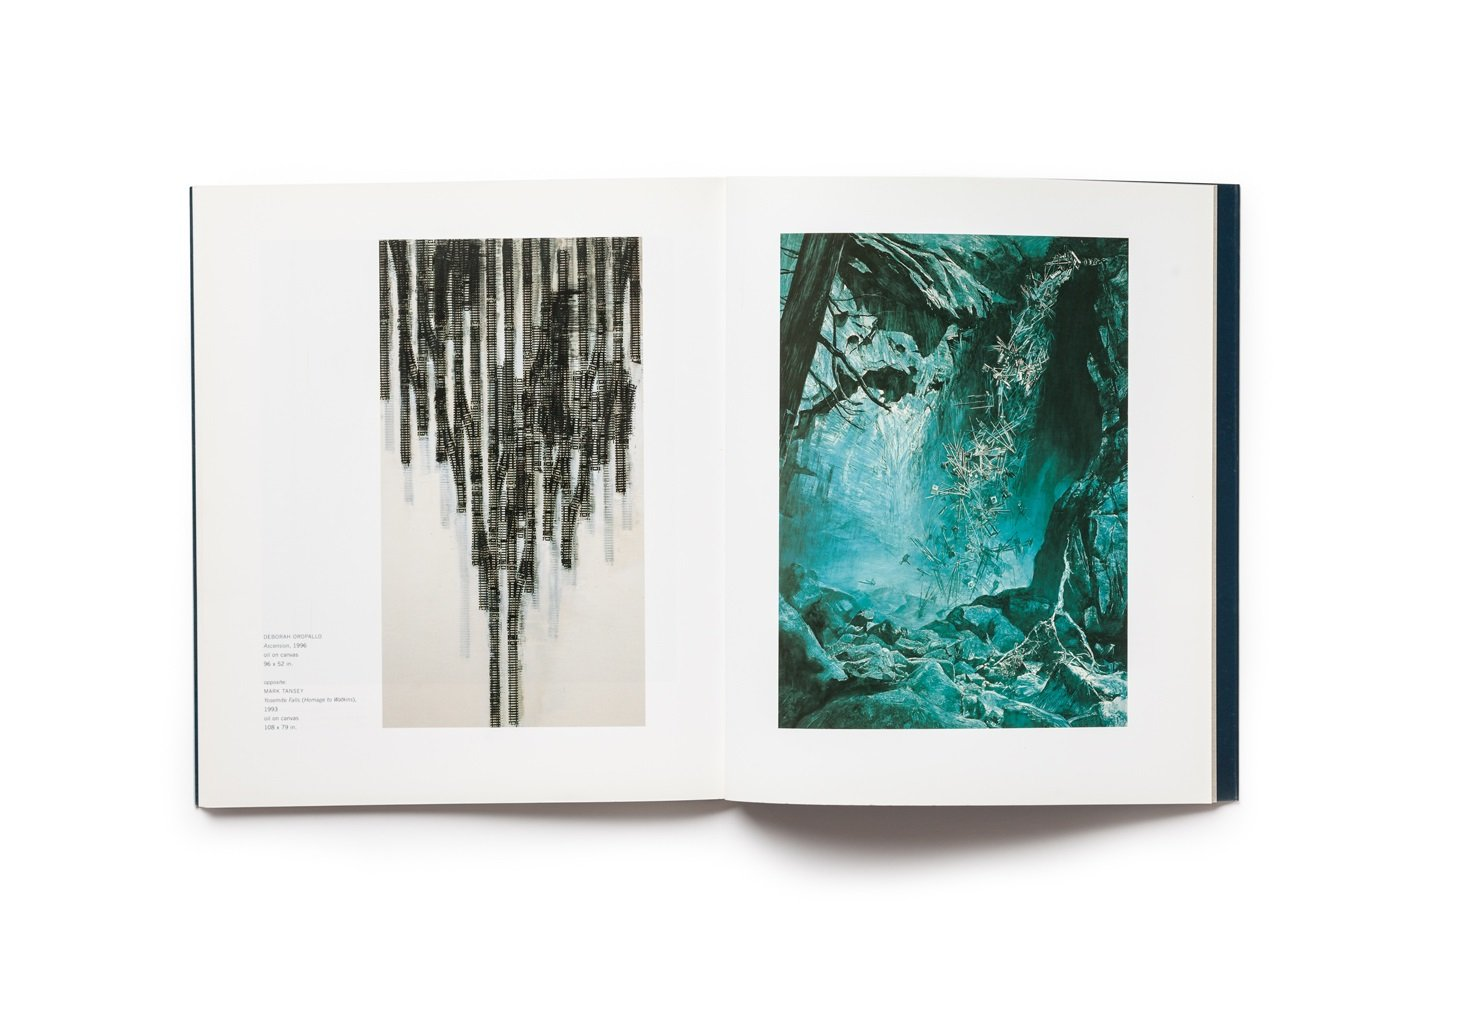 Celebrating Modern Art: Highlights of the Anderson Collection publication pages 78-79